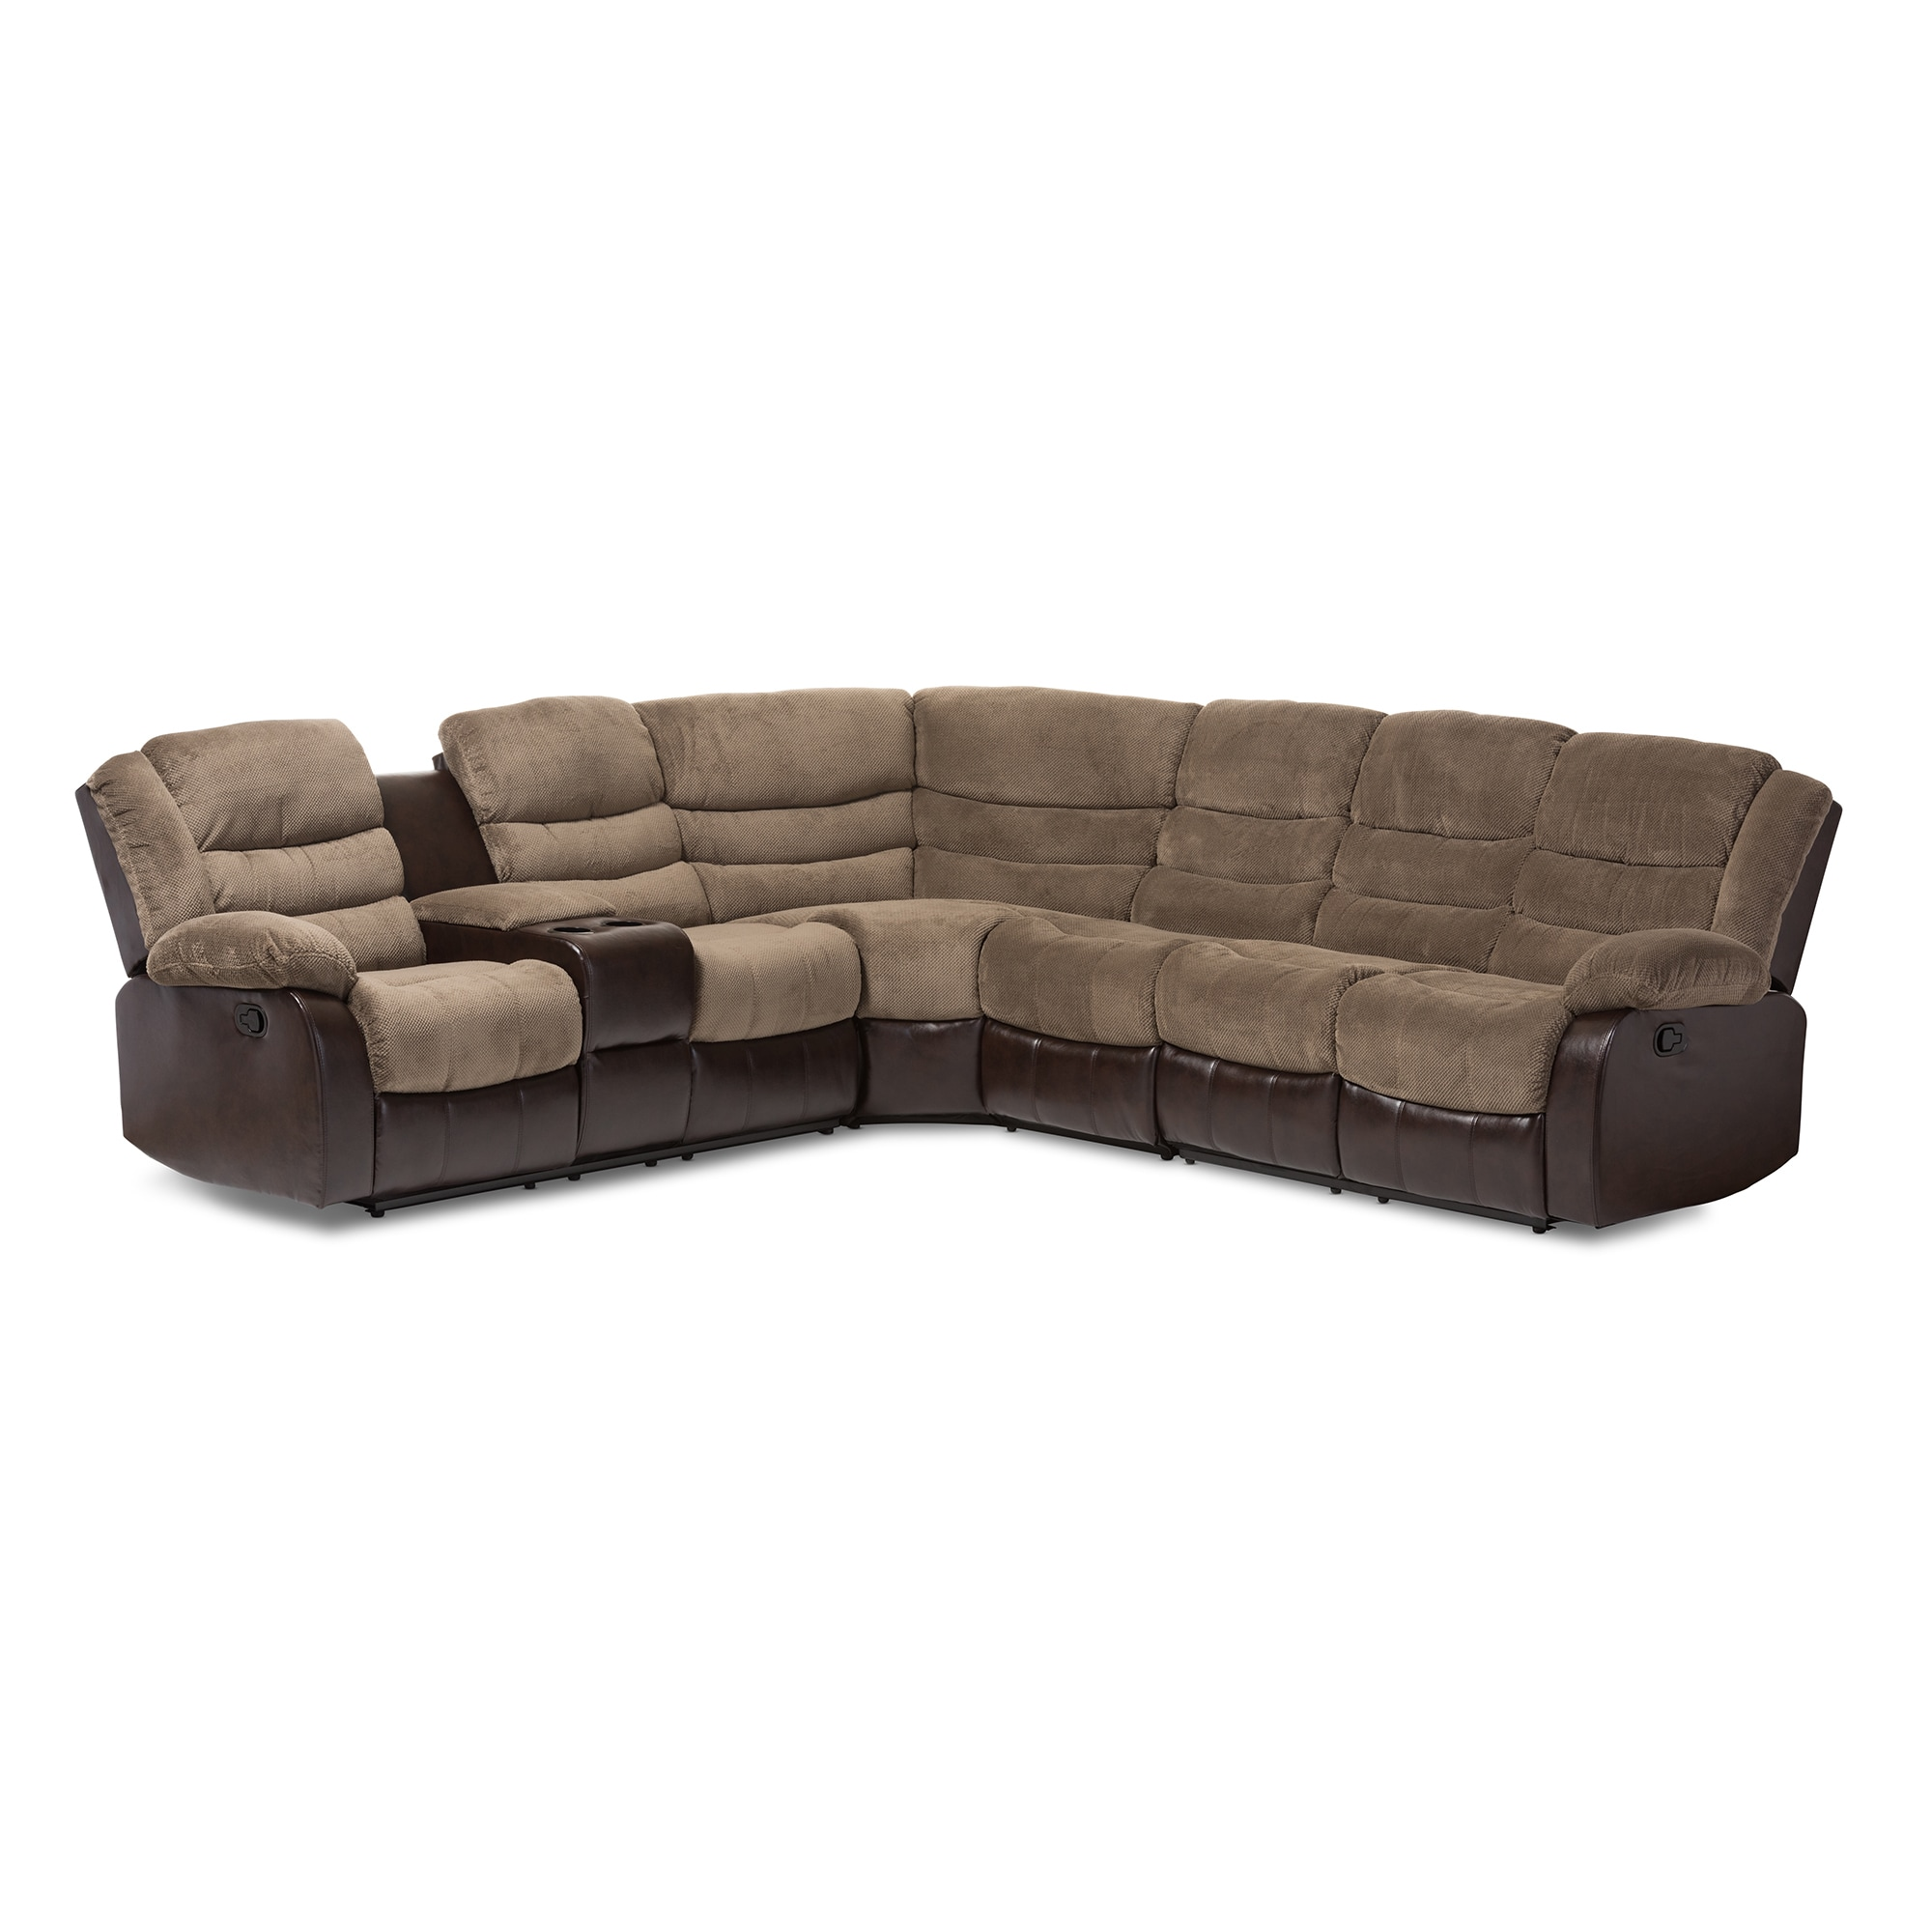 faux leather sofa deals flexsteel bexley buy sectional sofas online at overstock our best